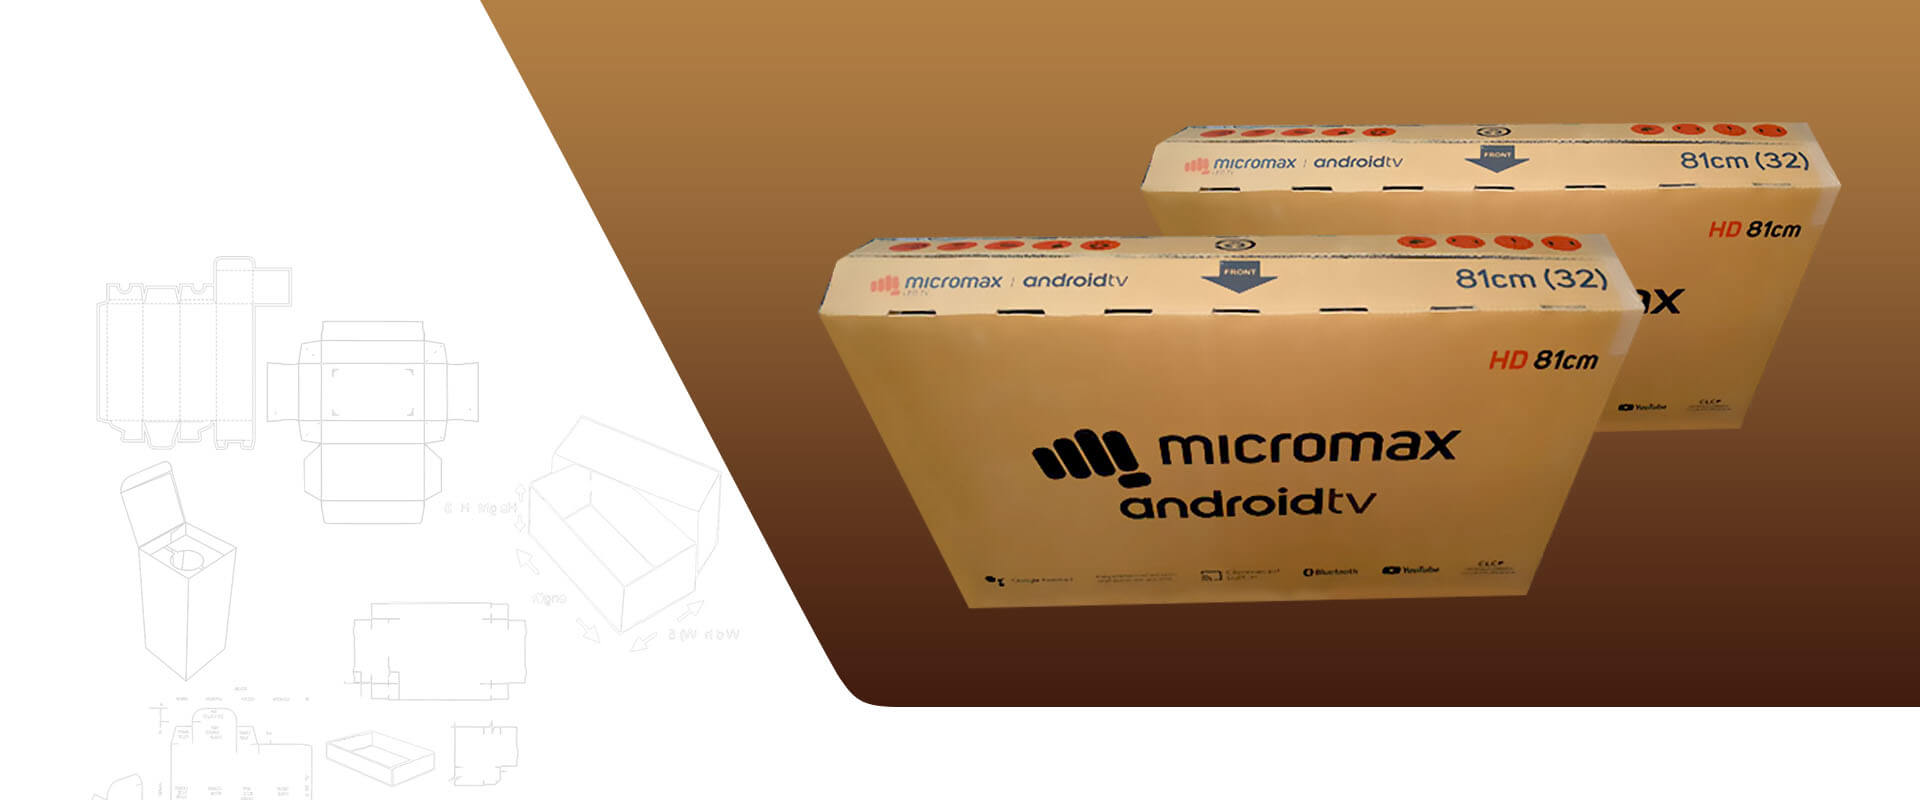 3 Ways to Choose the Best TV Packaging Boxes Supplier - Image 1